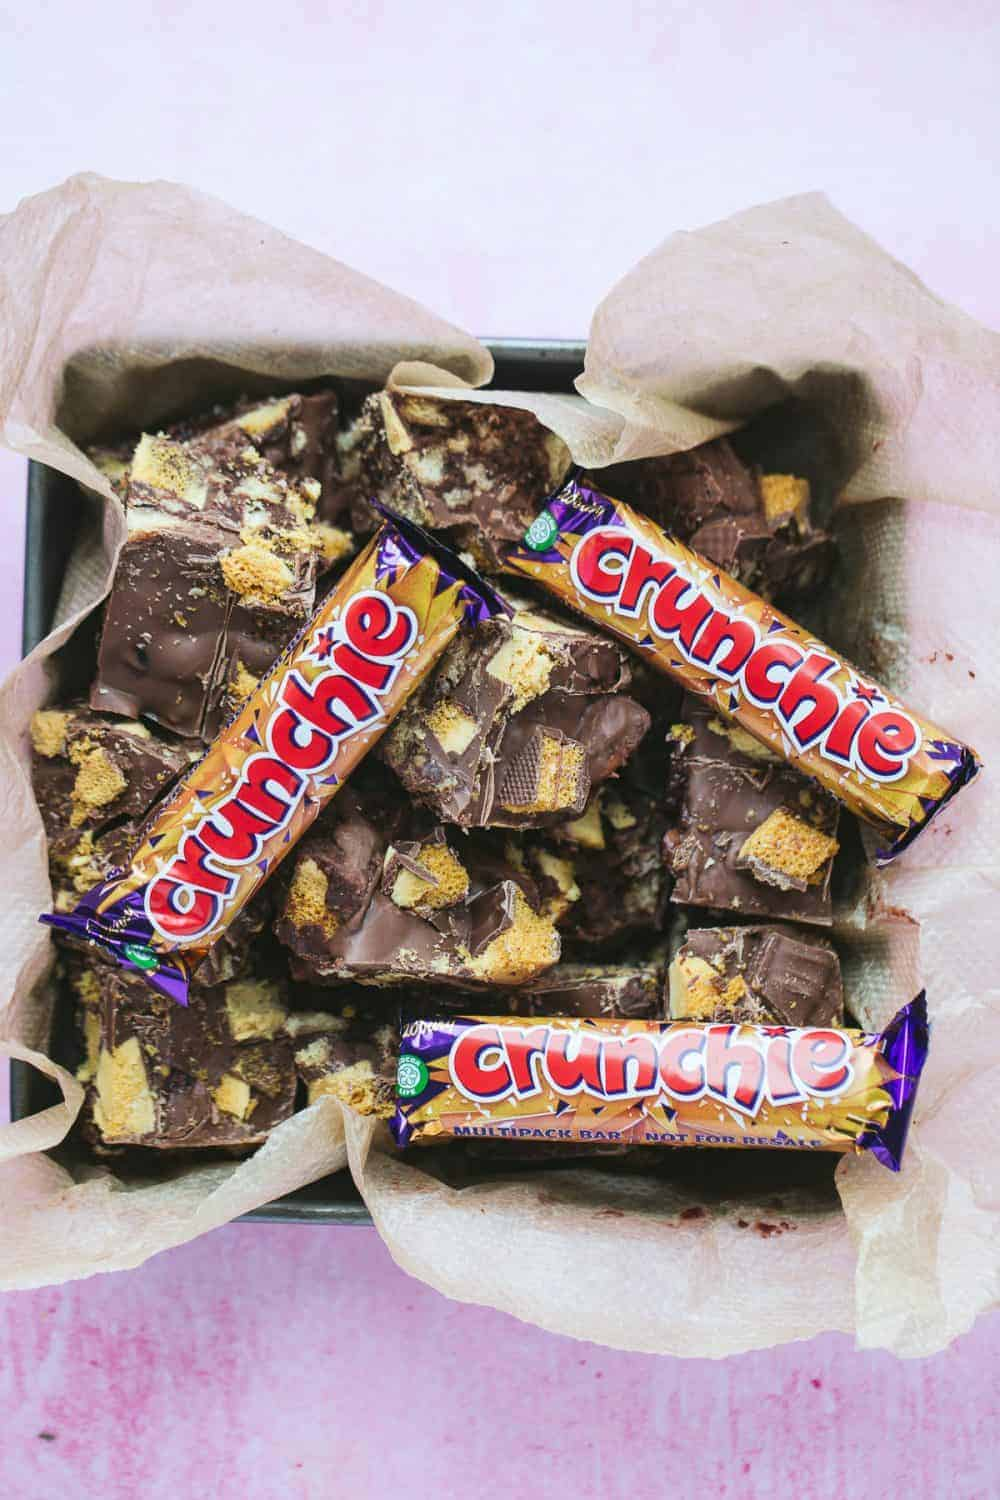 A baking tin filled with chocolate tiffin and Cadbury Crunchie bars.